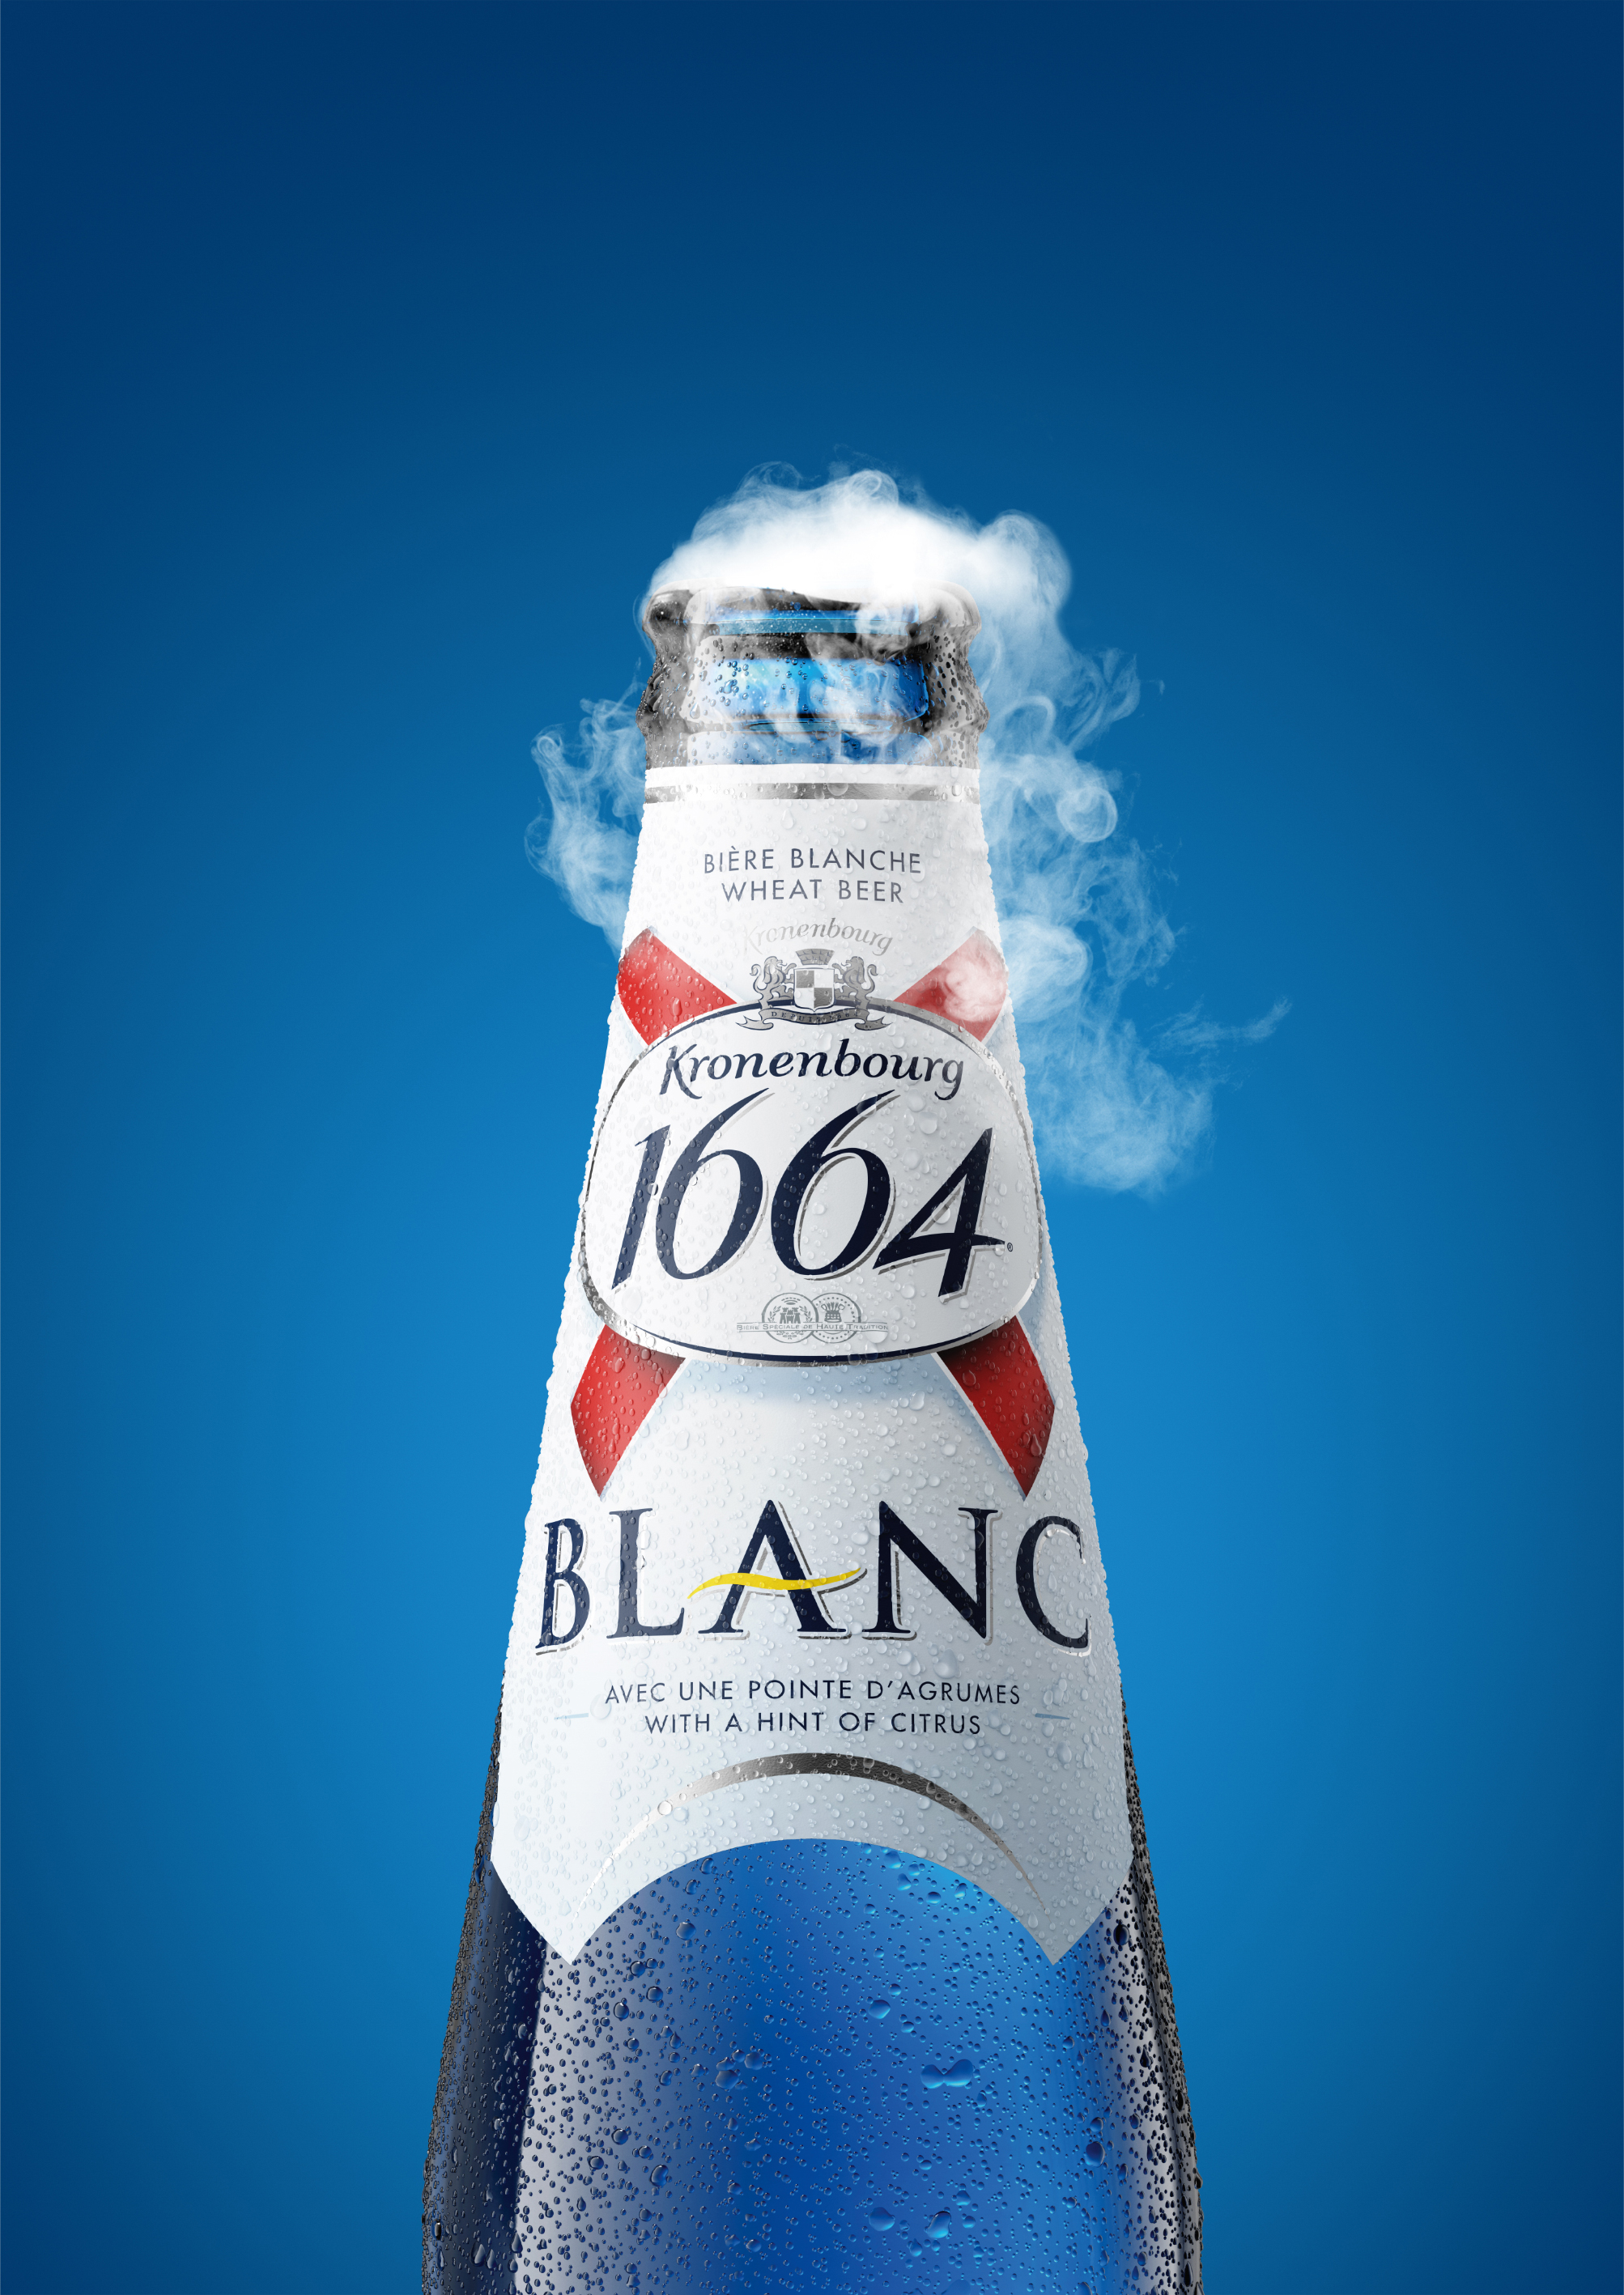 Advertising Agency Fold7 Toasts 2020 with Global 1664 Blanc Win